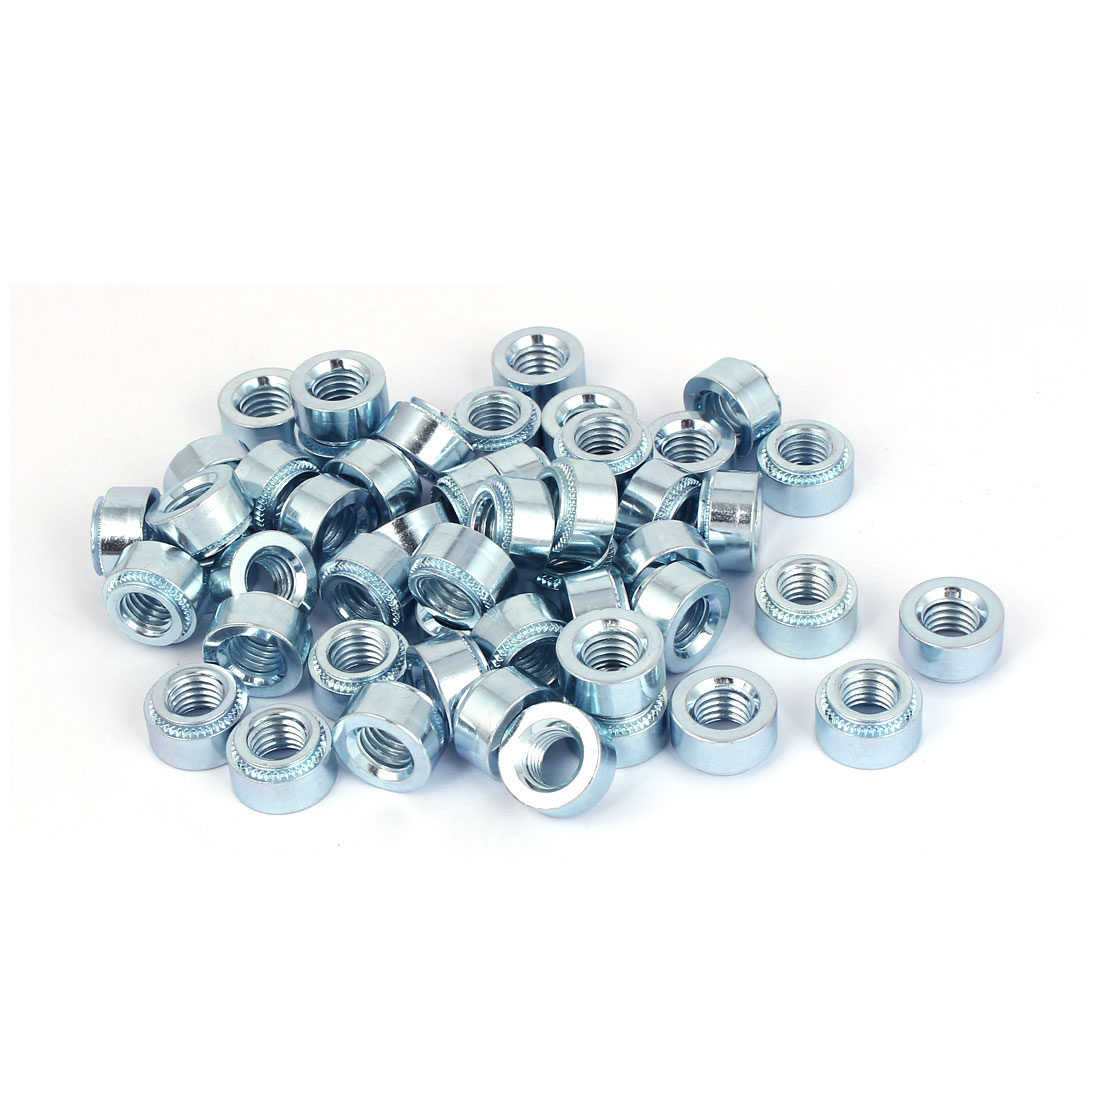 Carbon Steel Self Clinching Nut 10mm Thread Dia 50pcs for 2.3mm Thin Plates